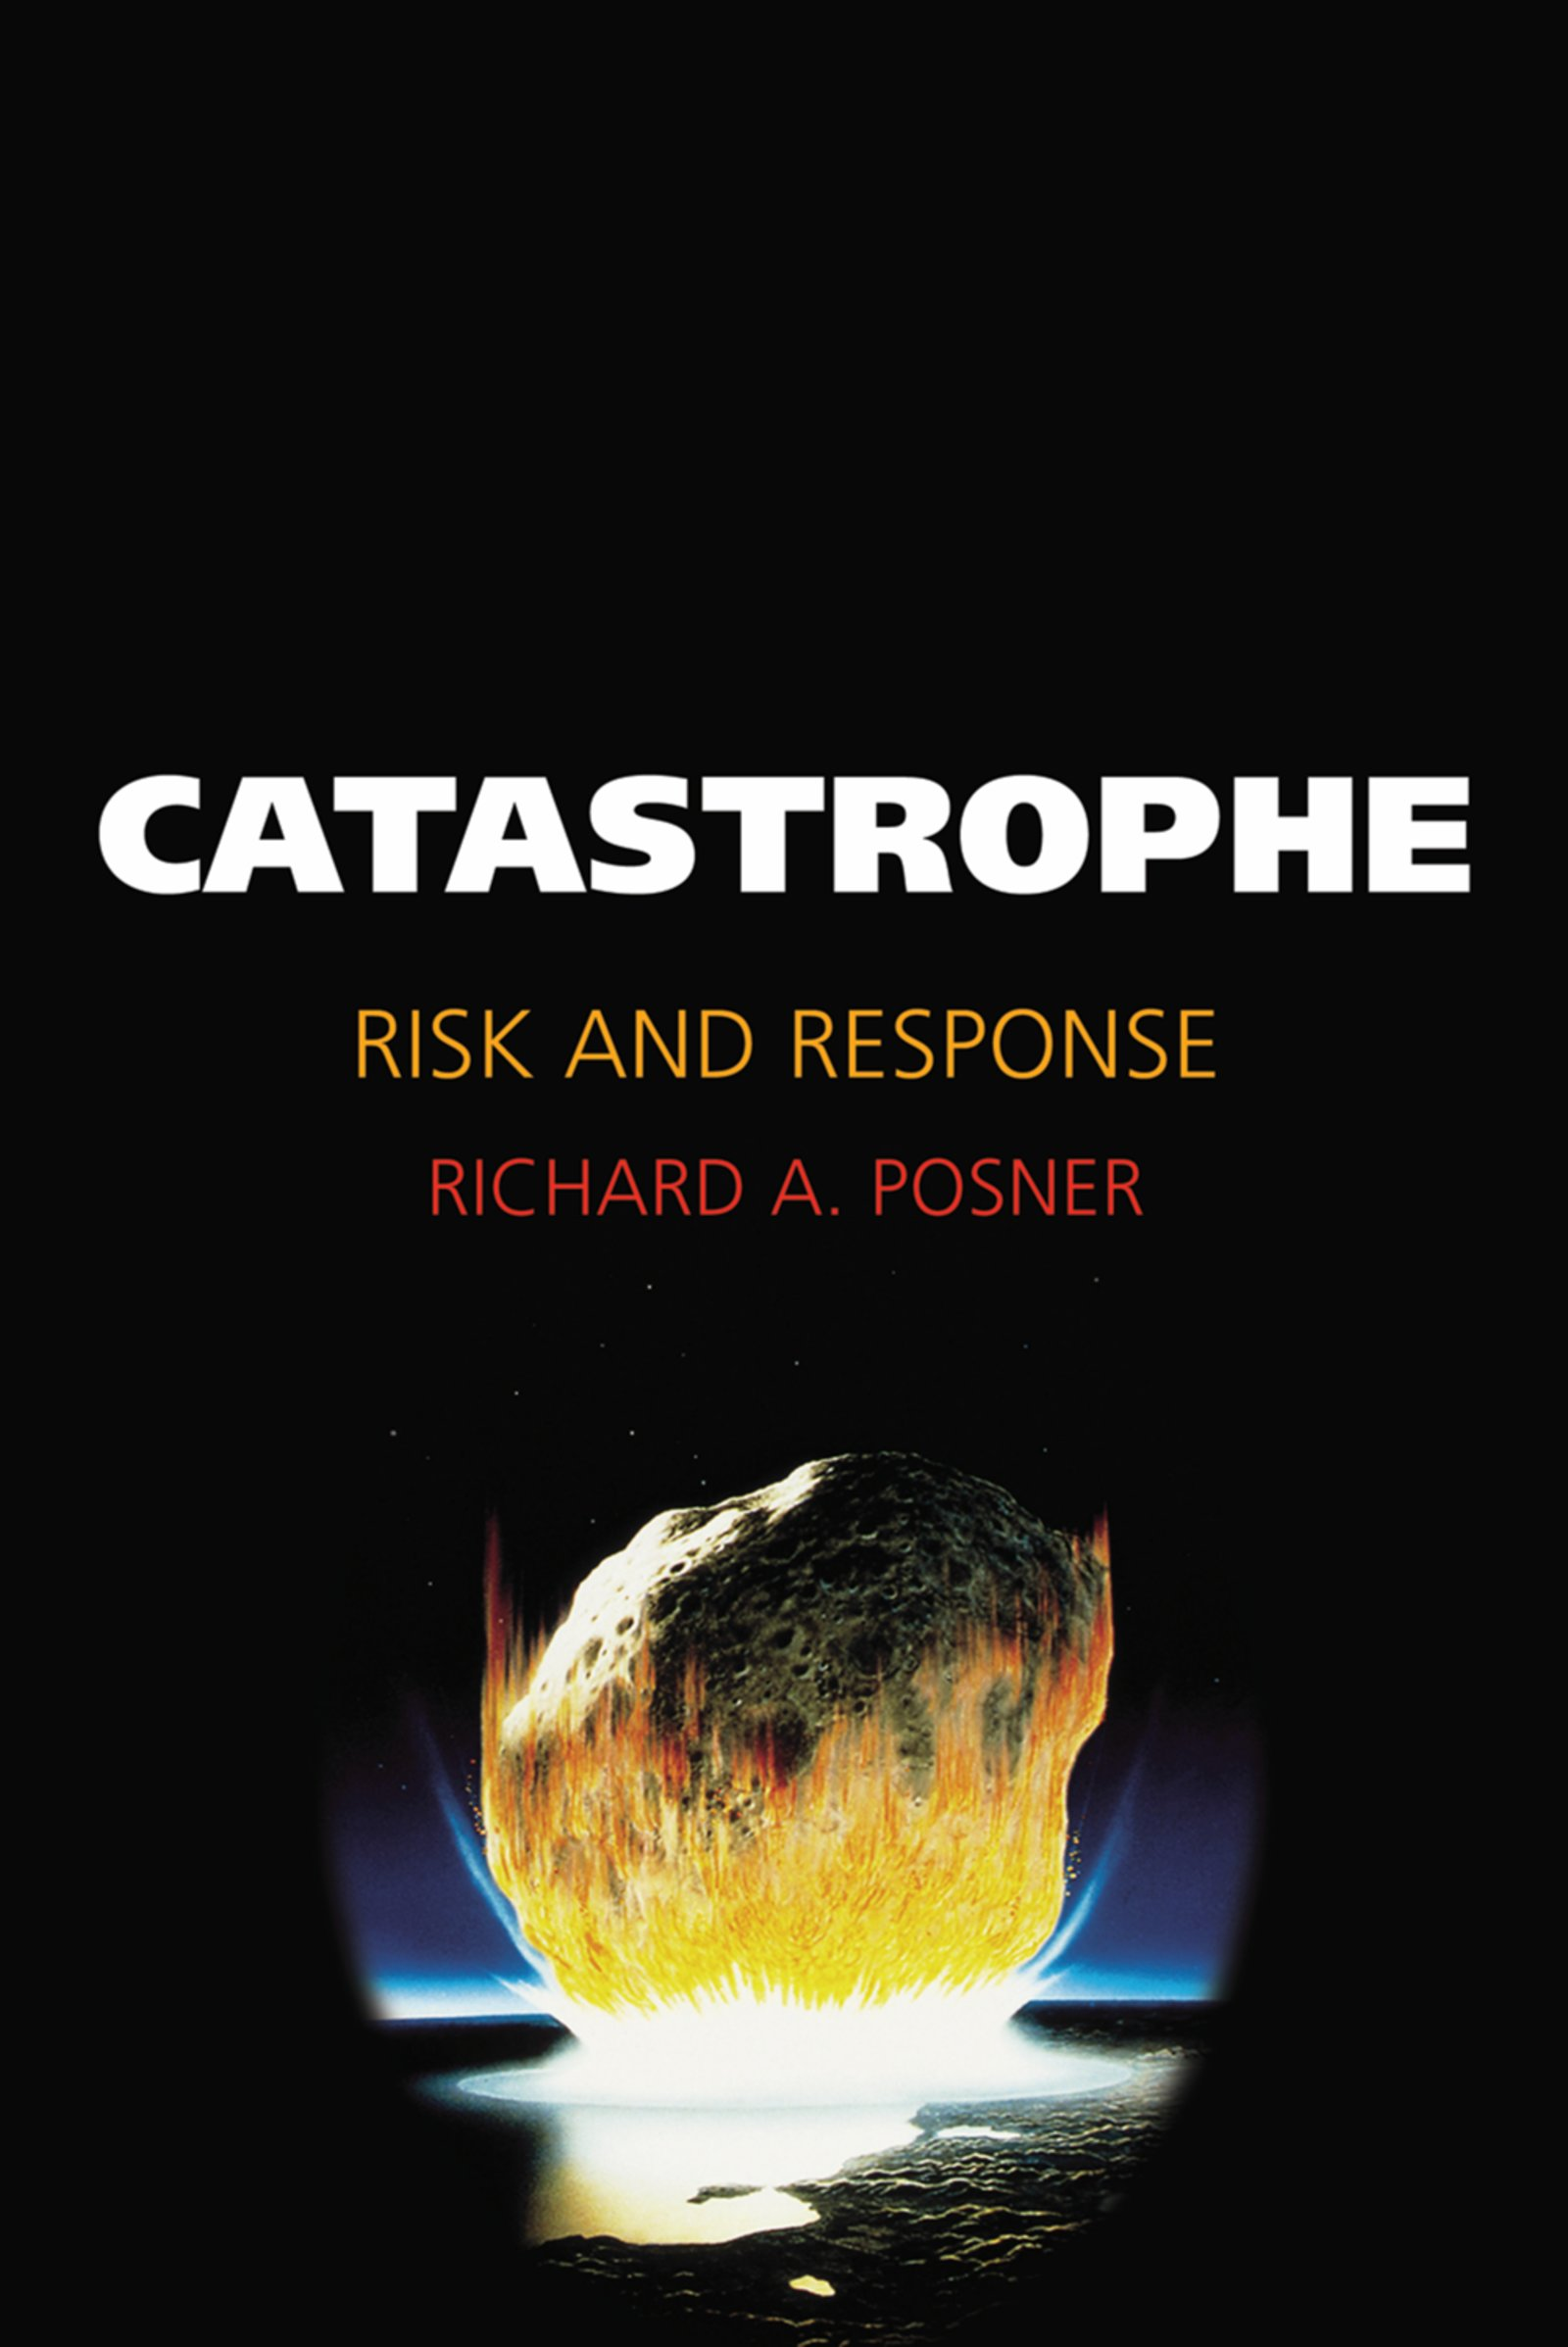 CatastropheRisk and Response